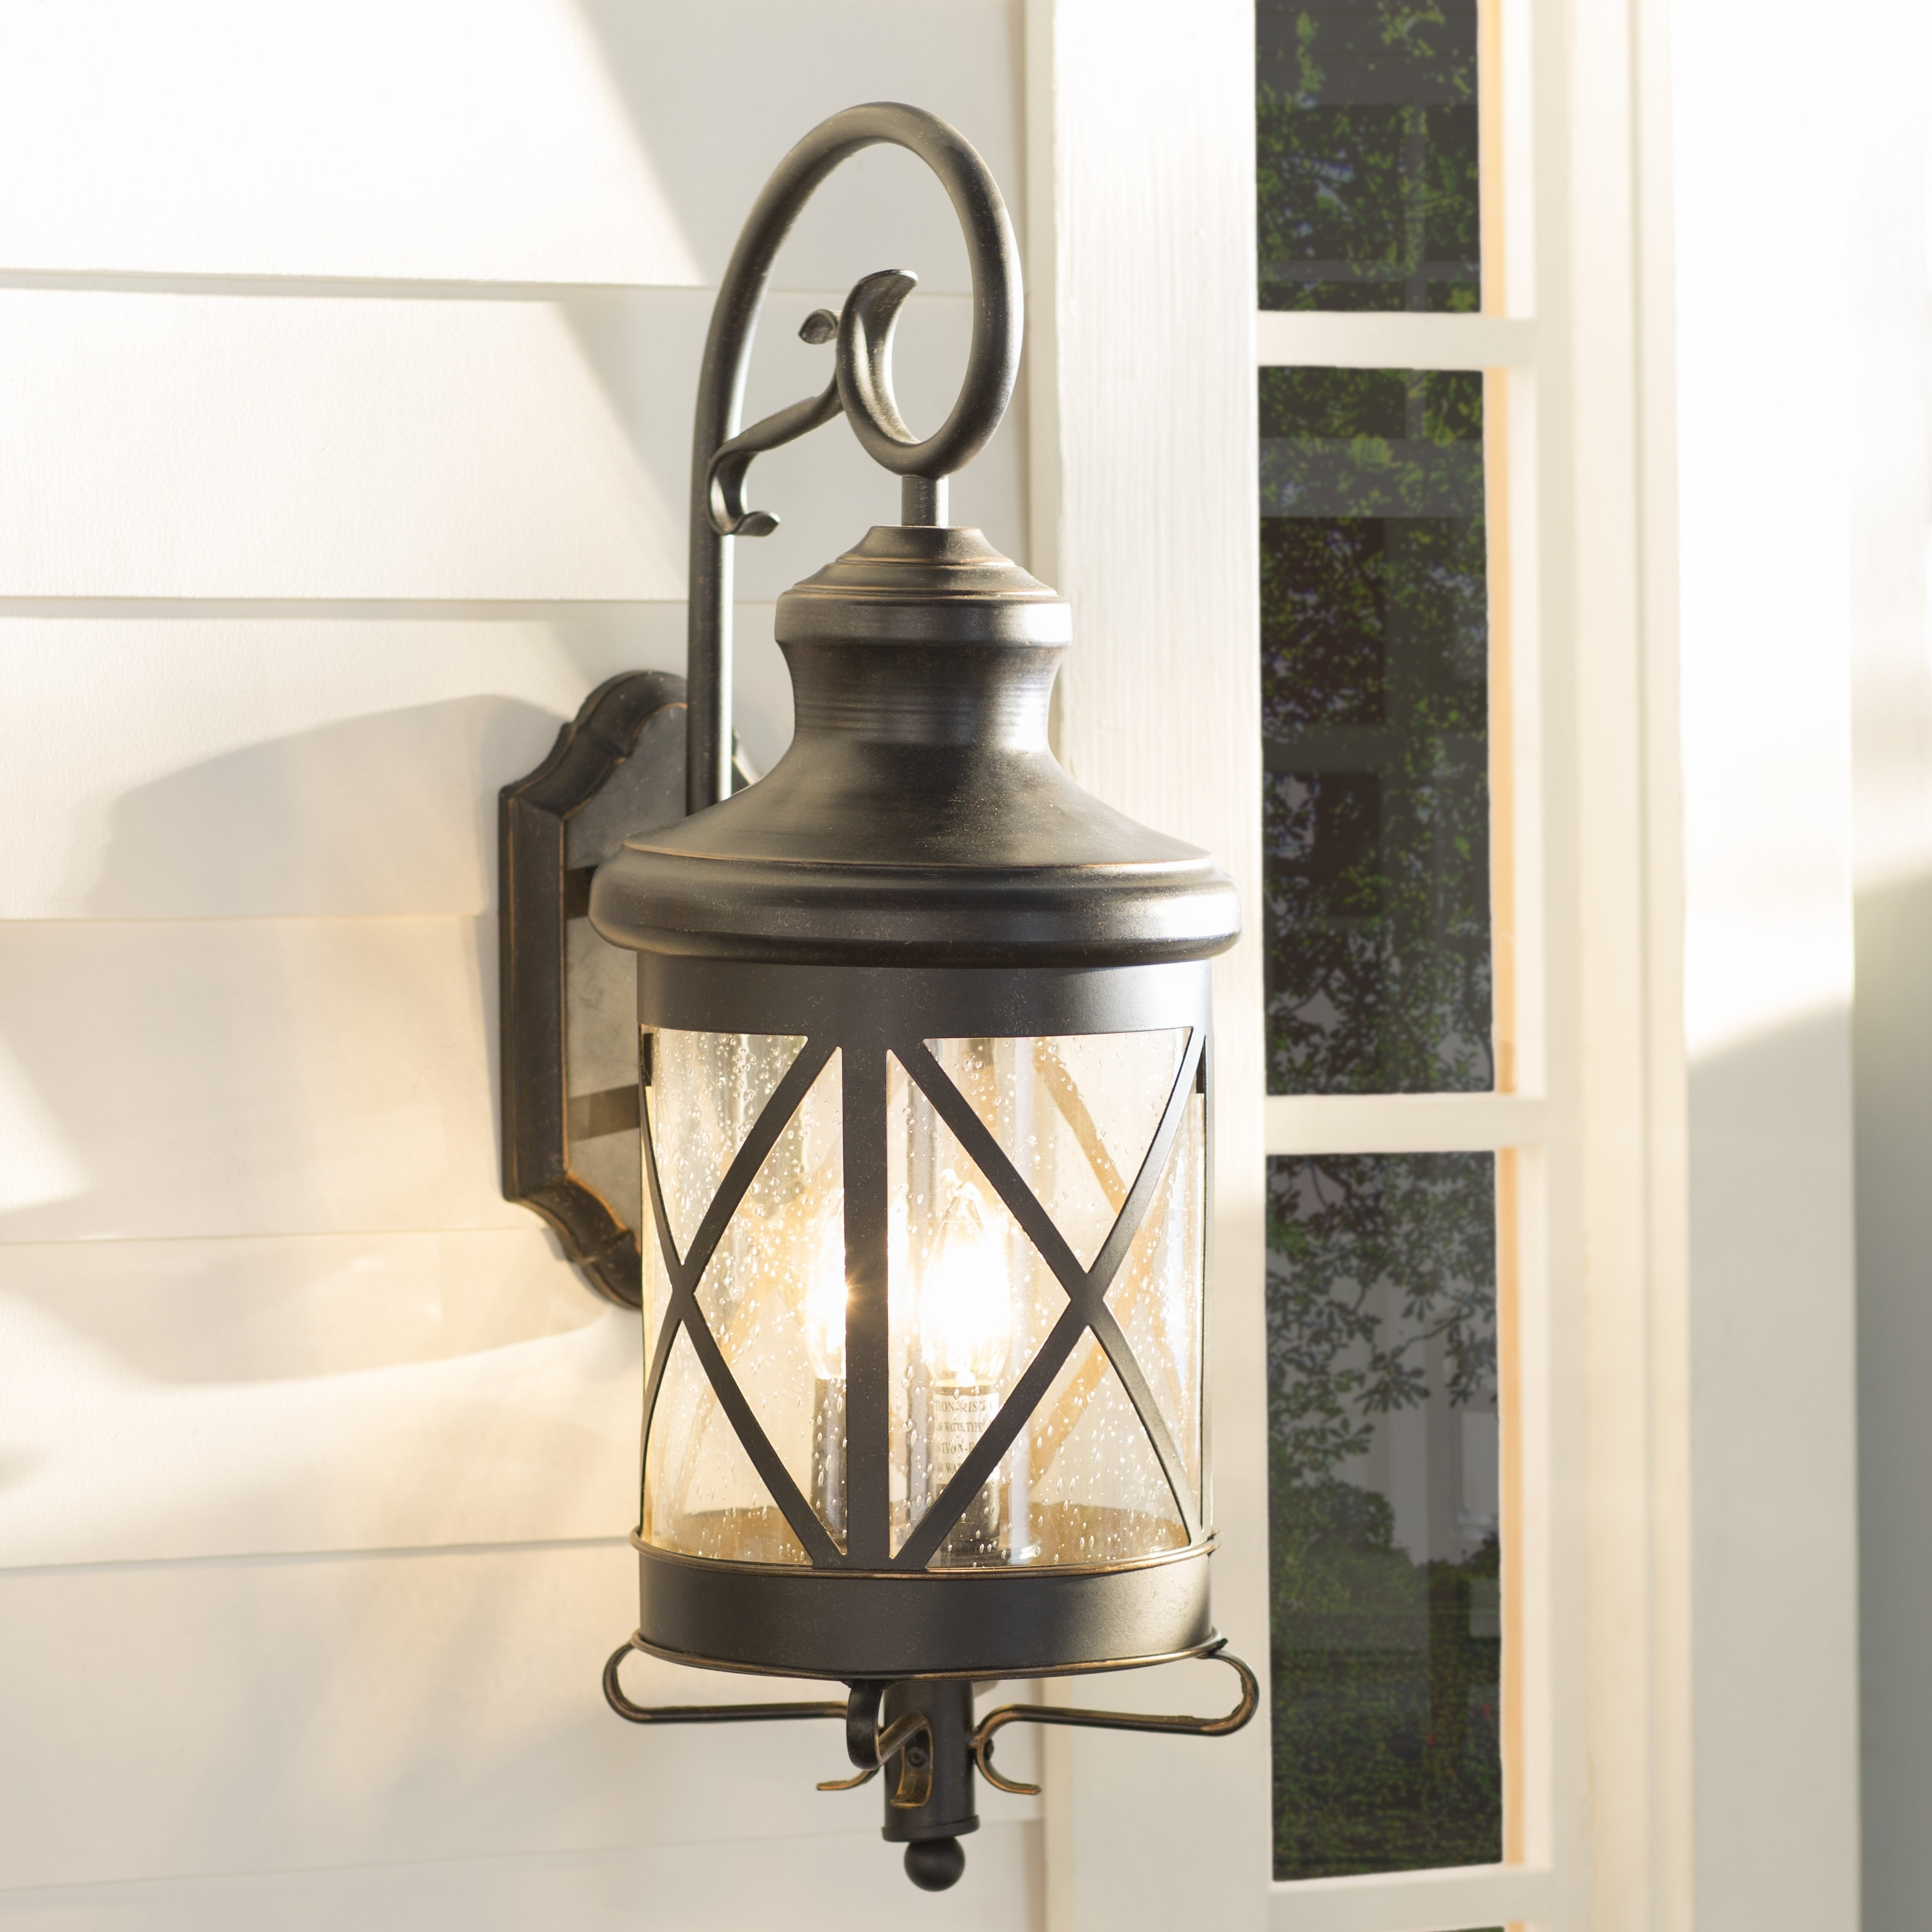 Three Posts Fairbury Outdoor Wall Lantern & Reviews | Wayfair for Outdoor Vinyl Lanterns (Image 19 of 20)